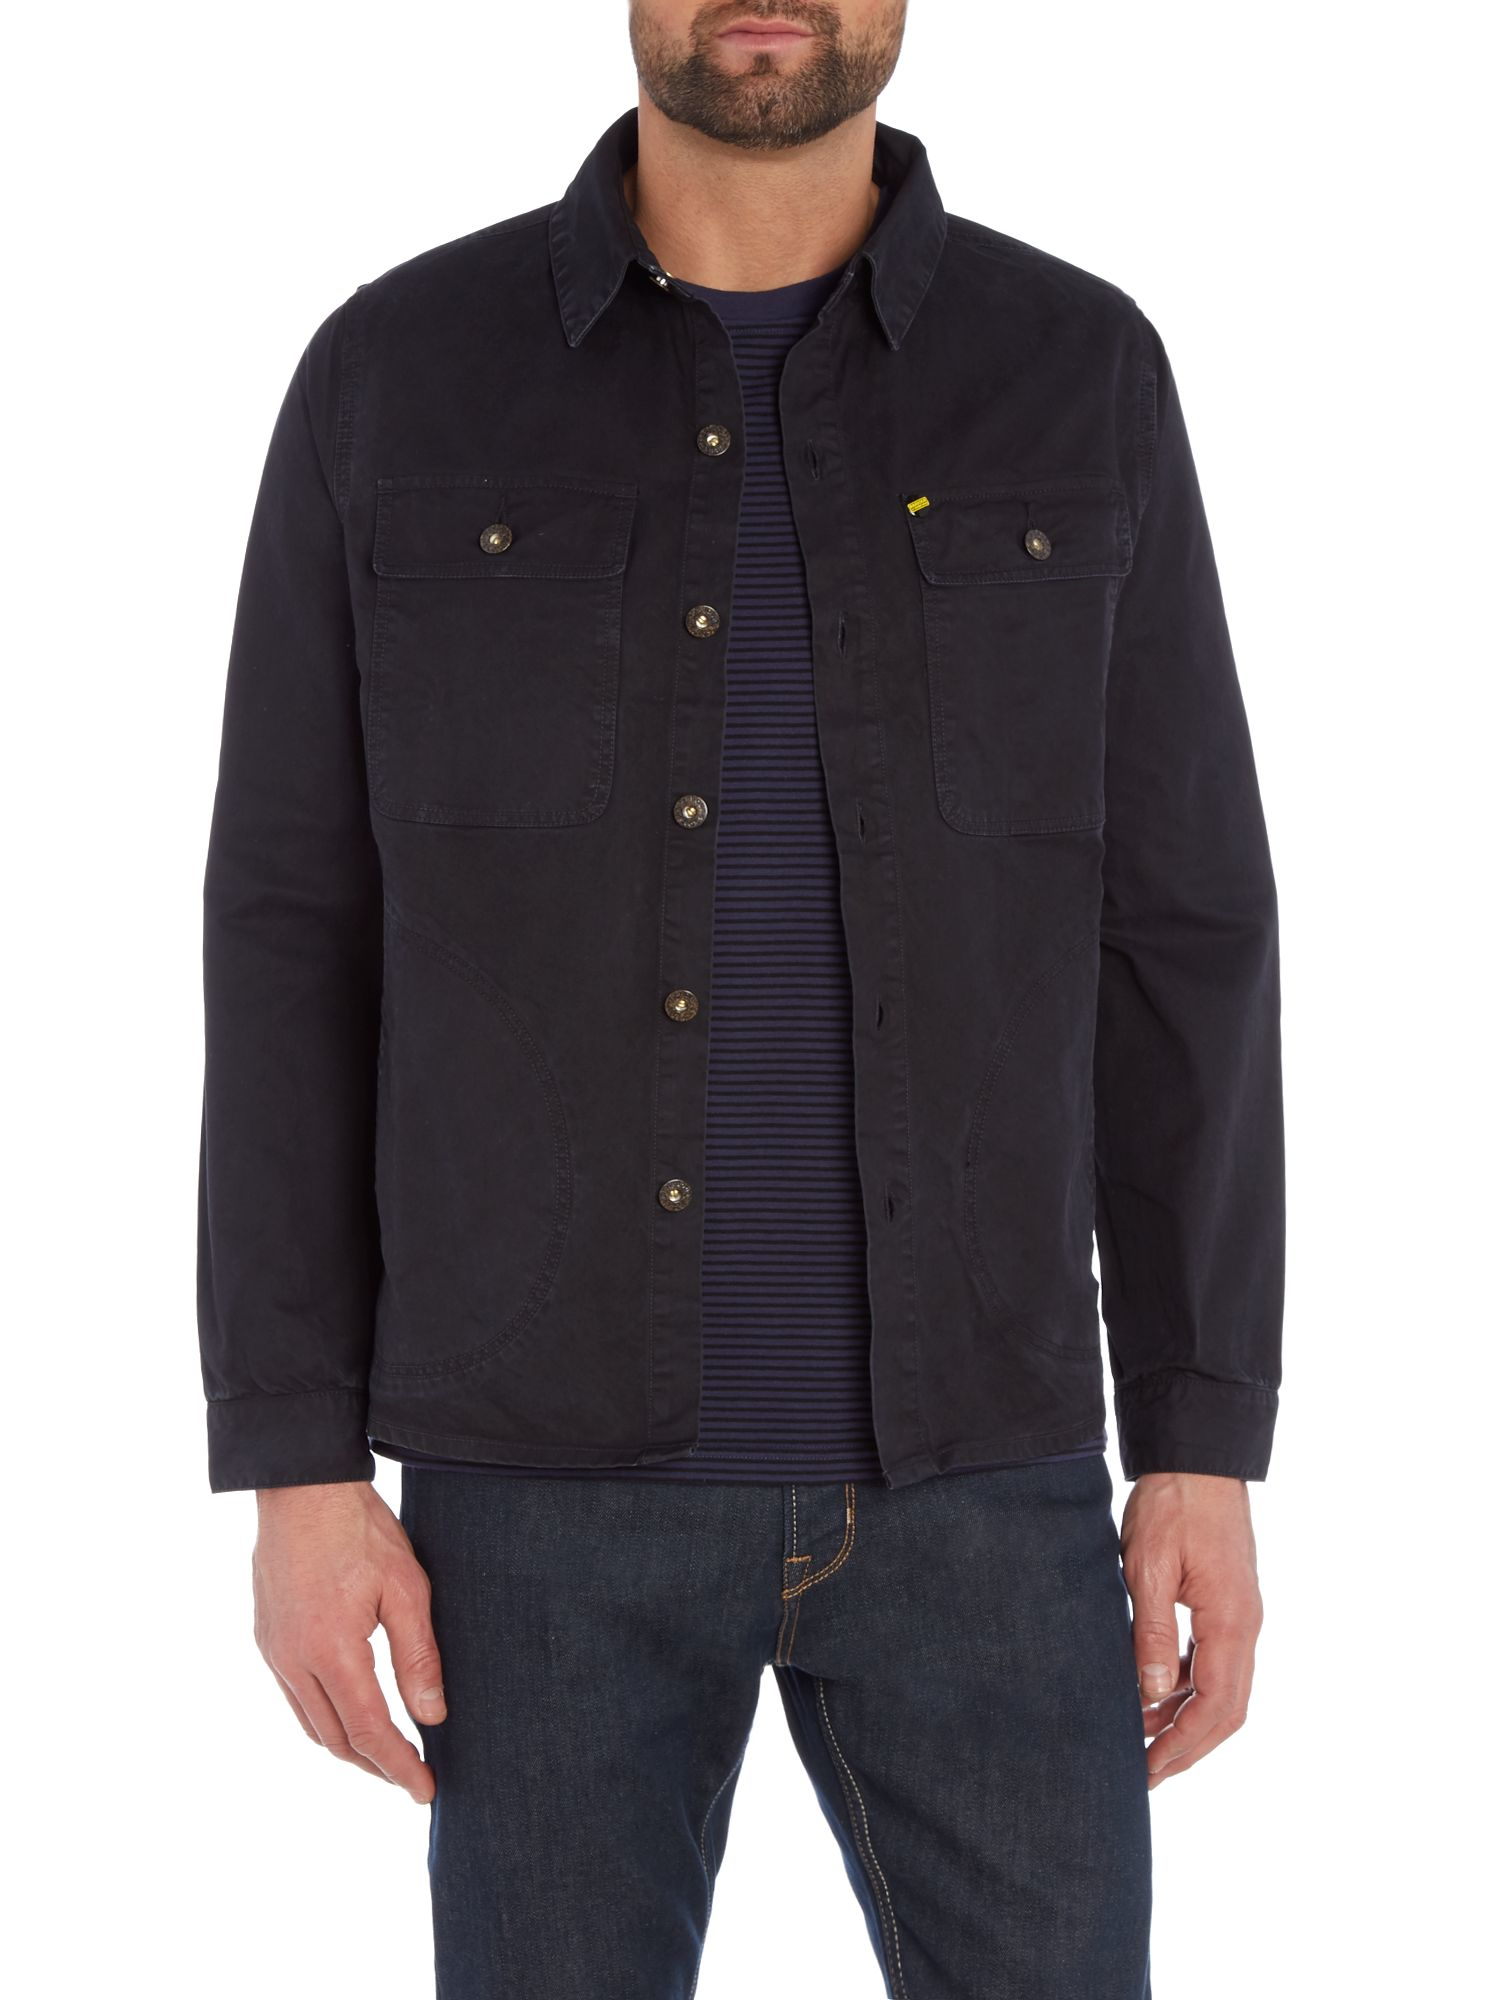 Barbour Aintree Overshirt In Black For Men Lyst